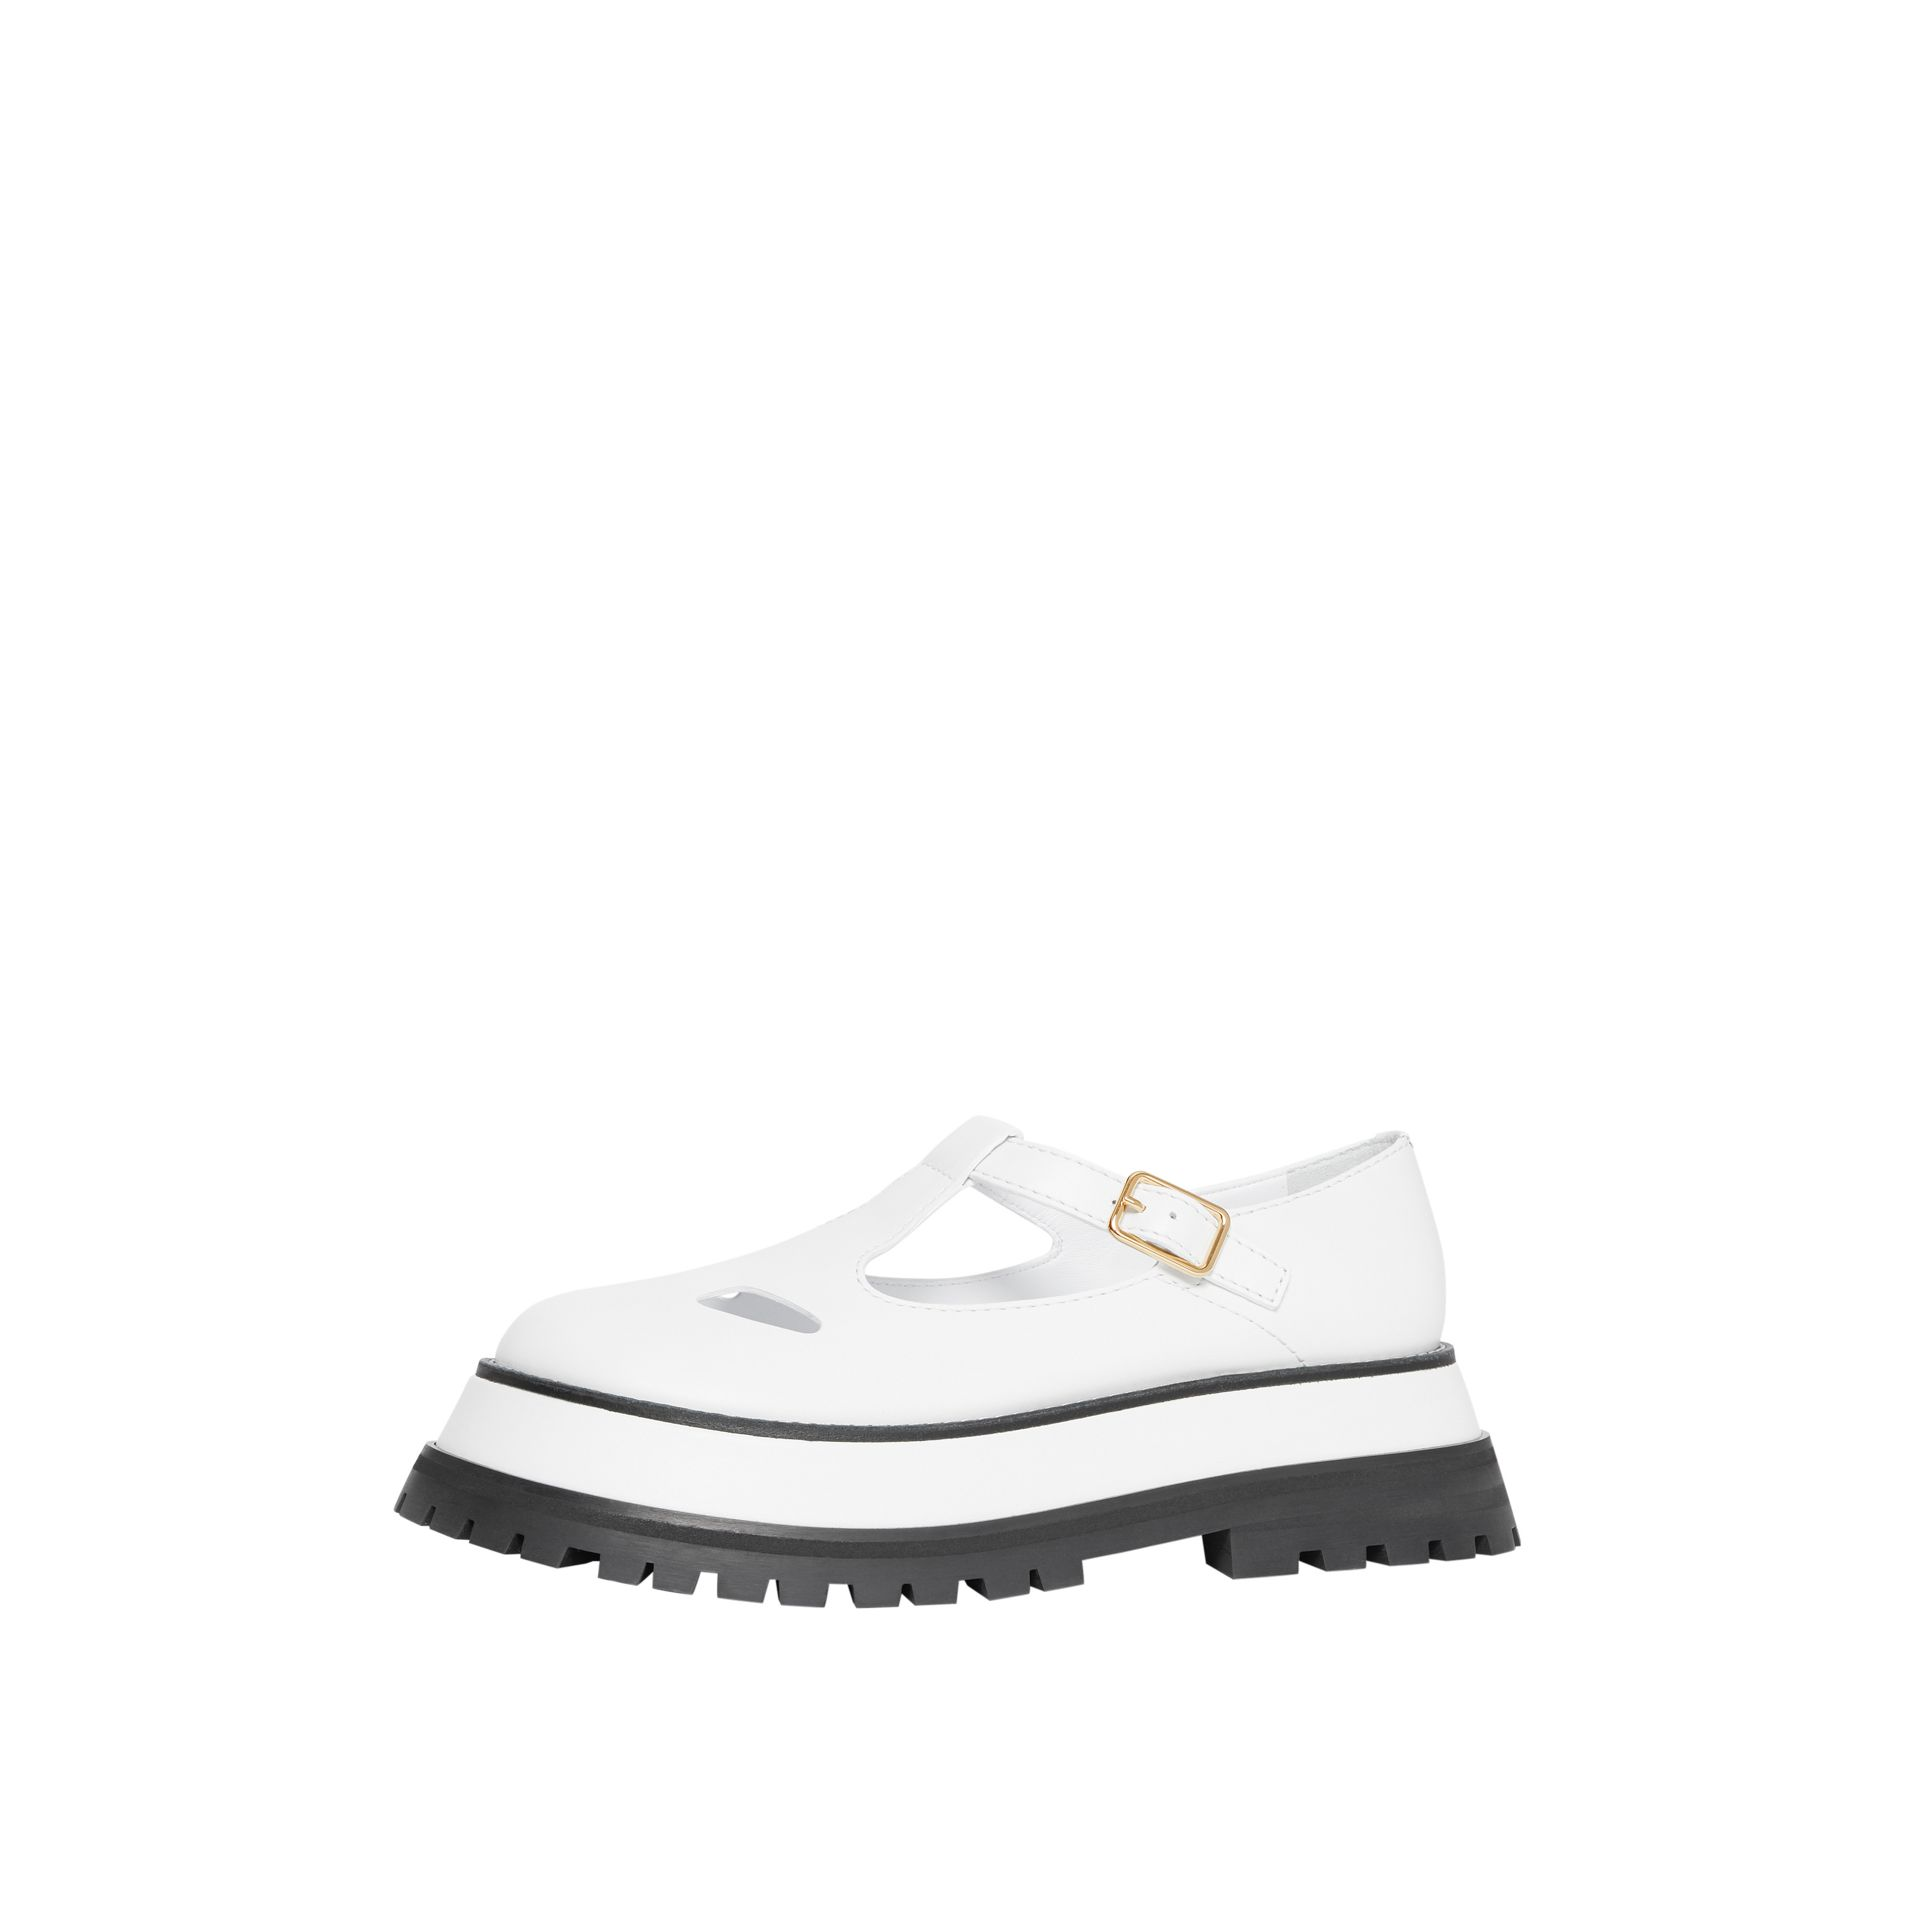 Leather T-bar Shoes in Optic White - Women | Burberry - gallery image 7